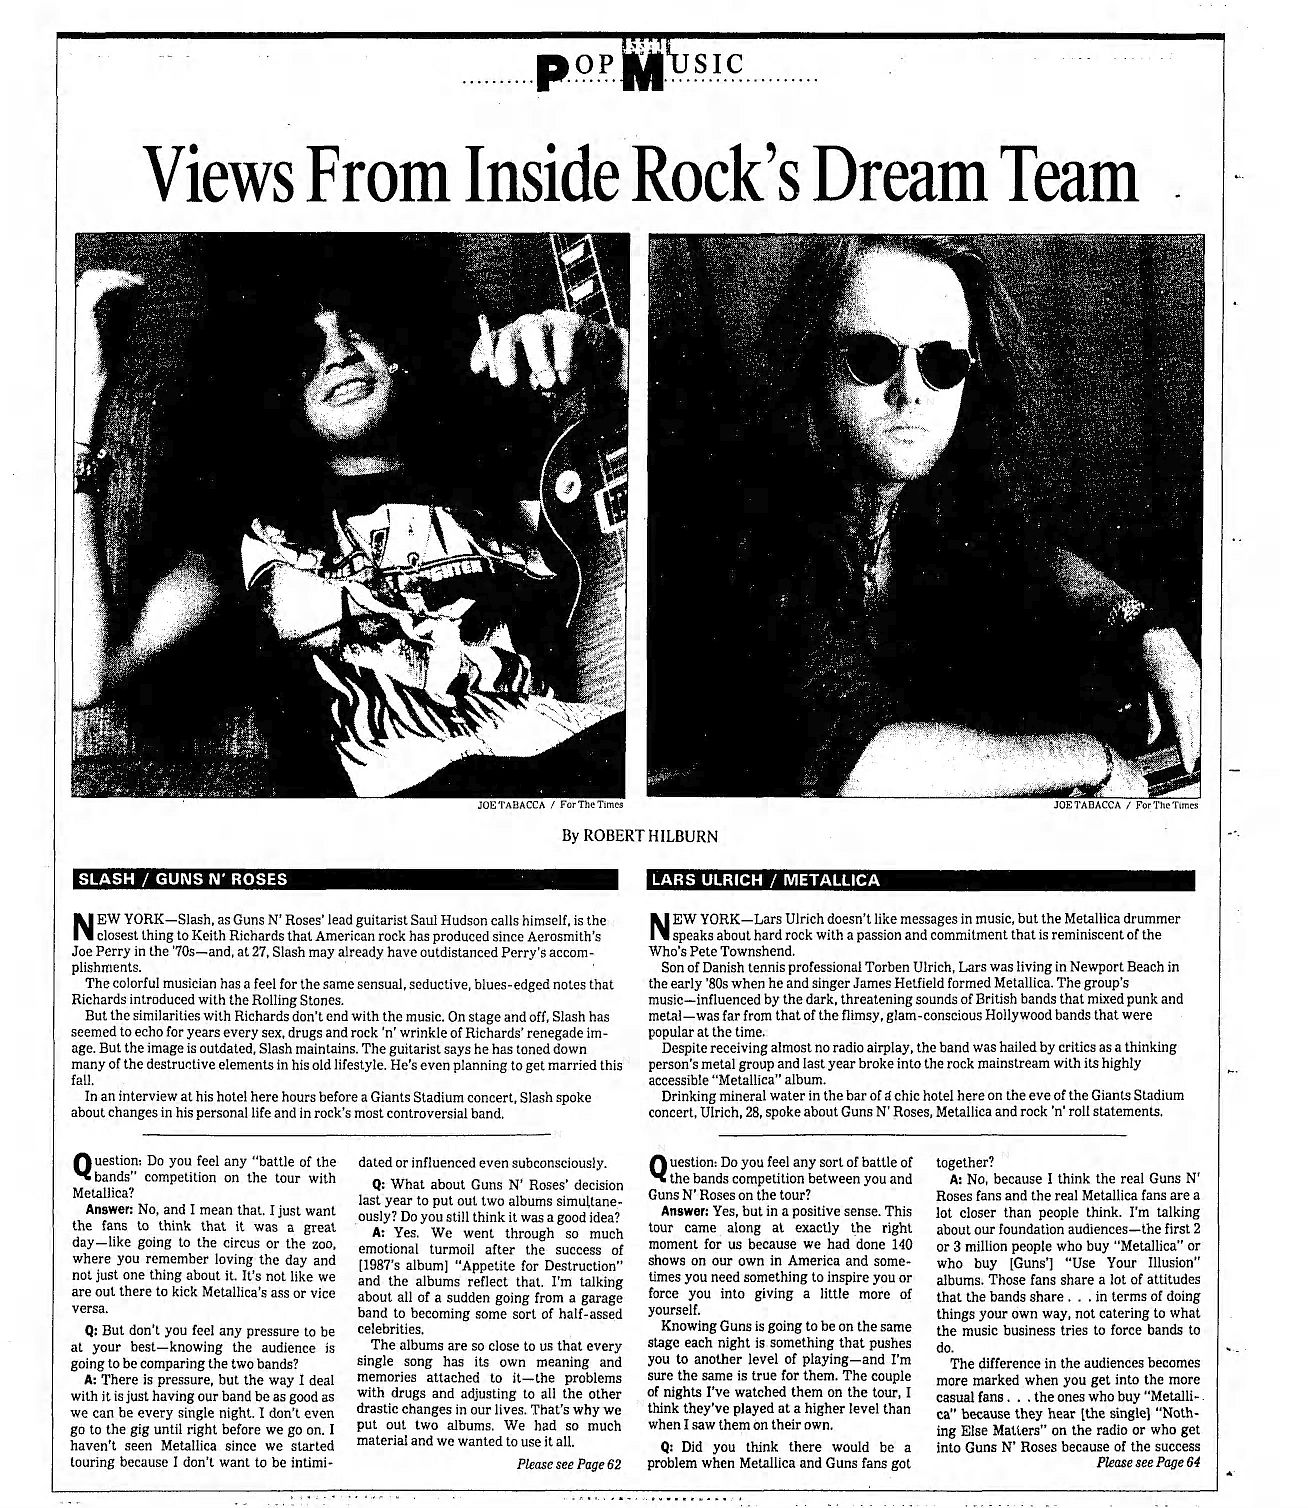 1992.08.09 - Interview with Slash in Los Angeles Times YtqMPnWk_o